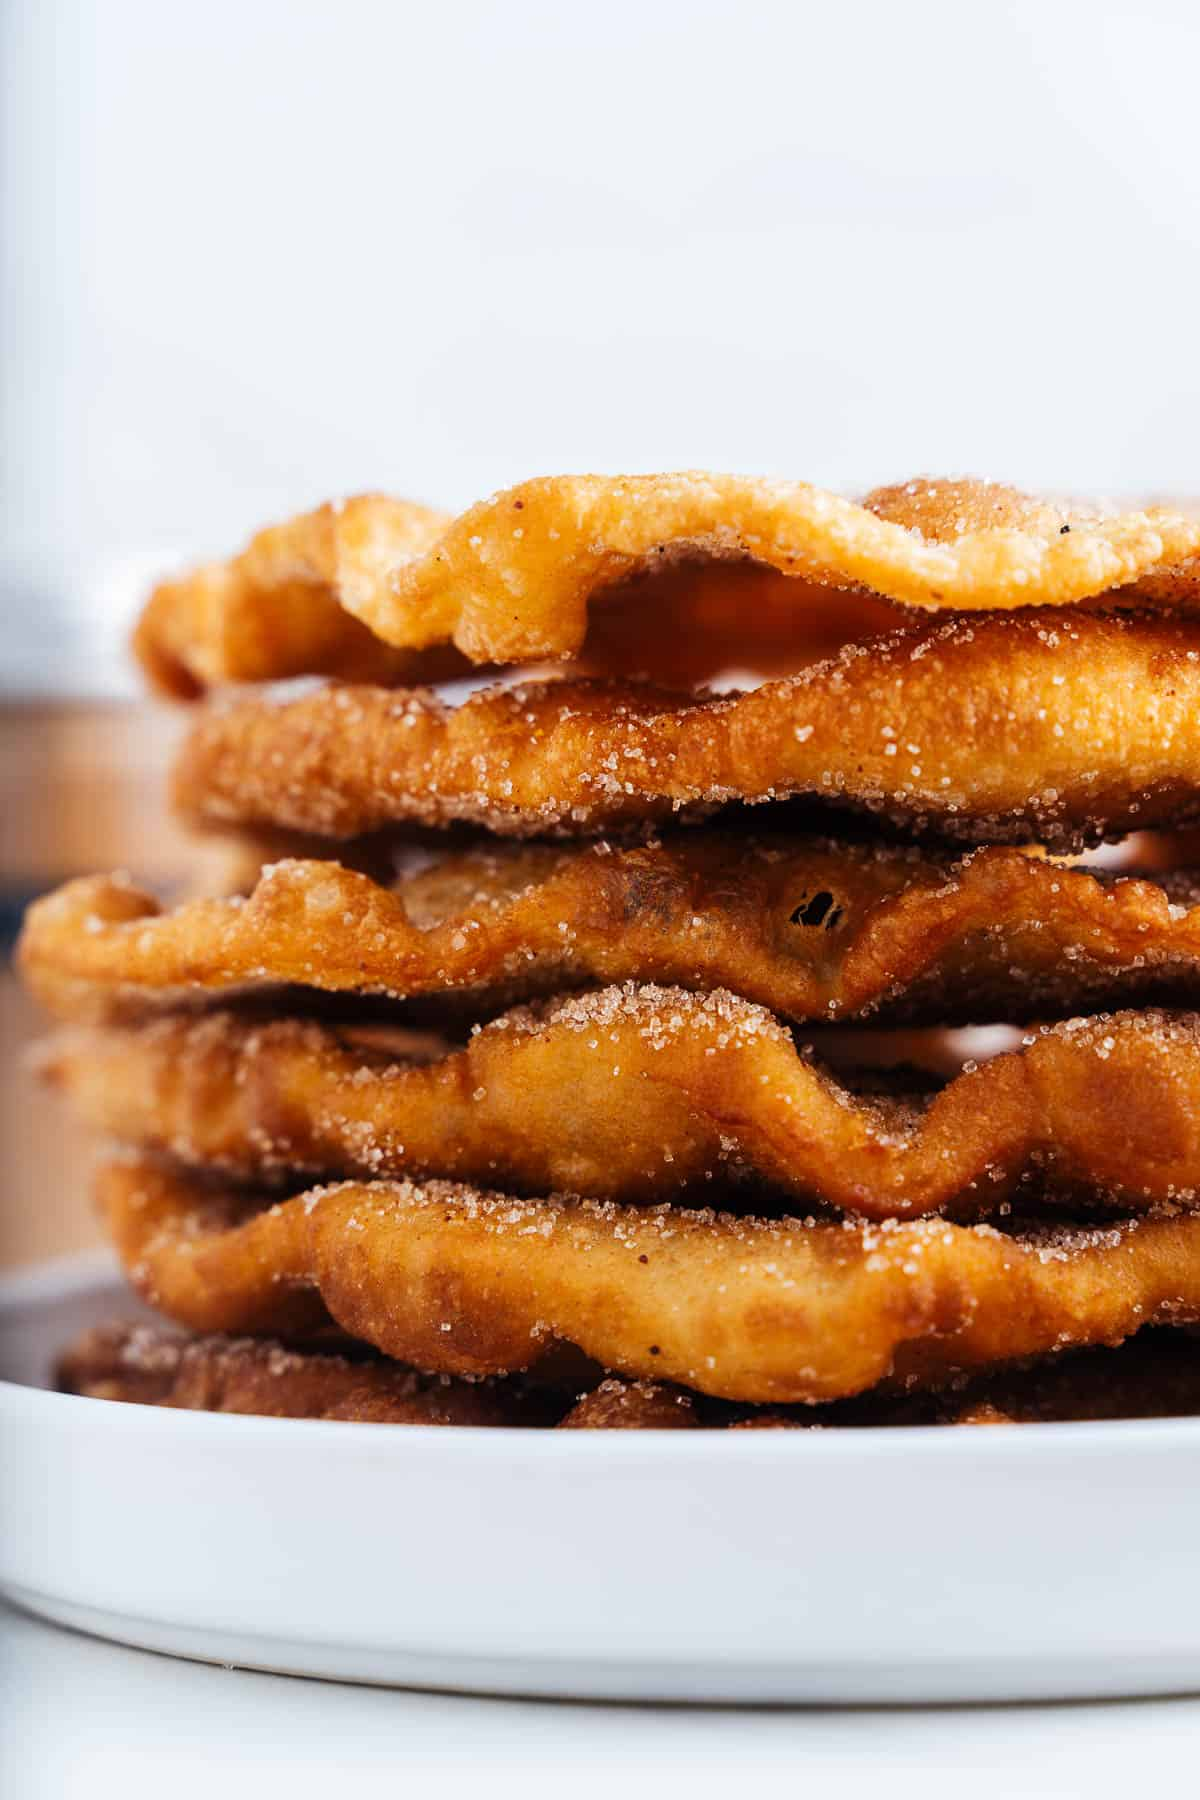 Bunuelos Stacked on a Plate